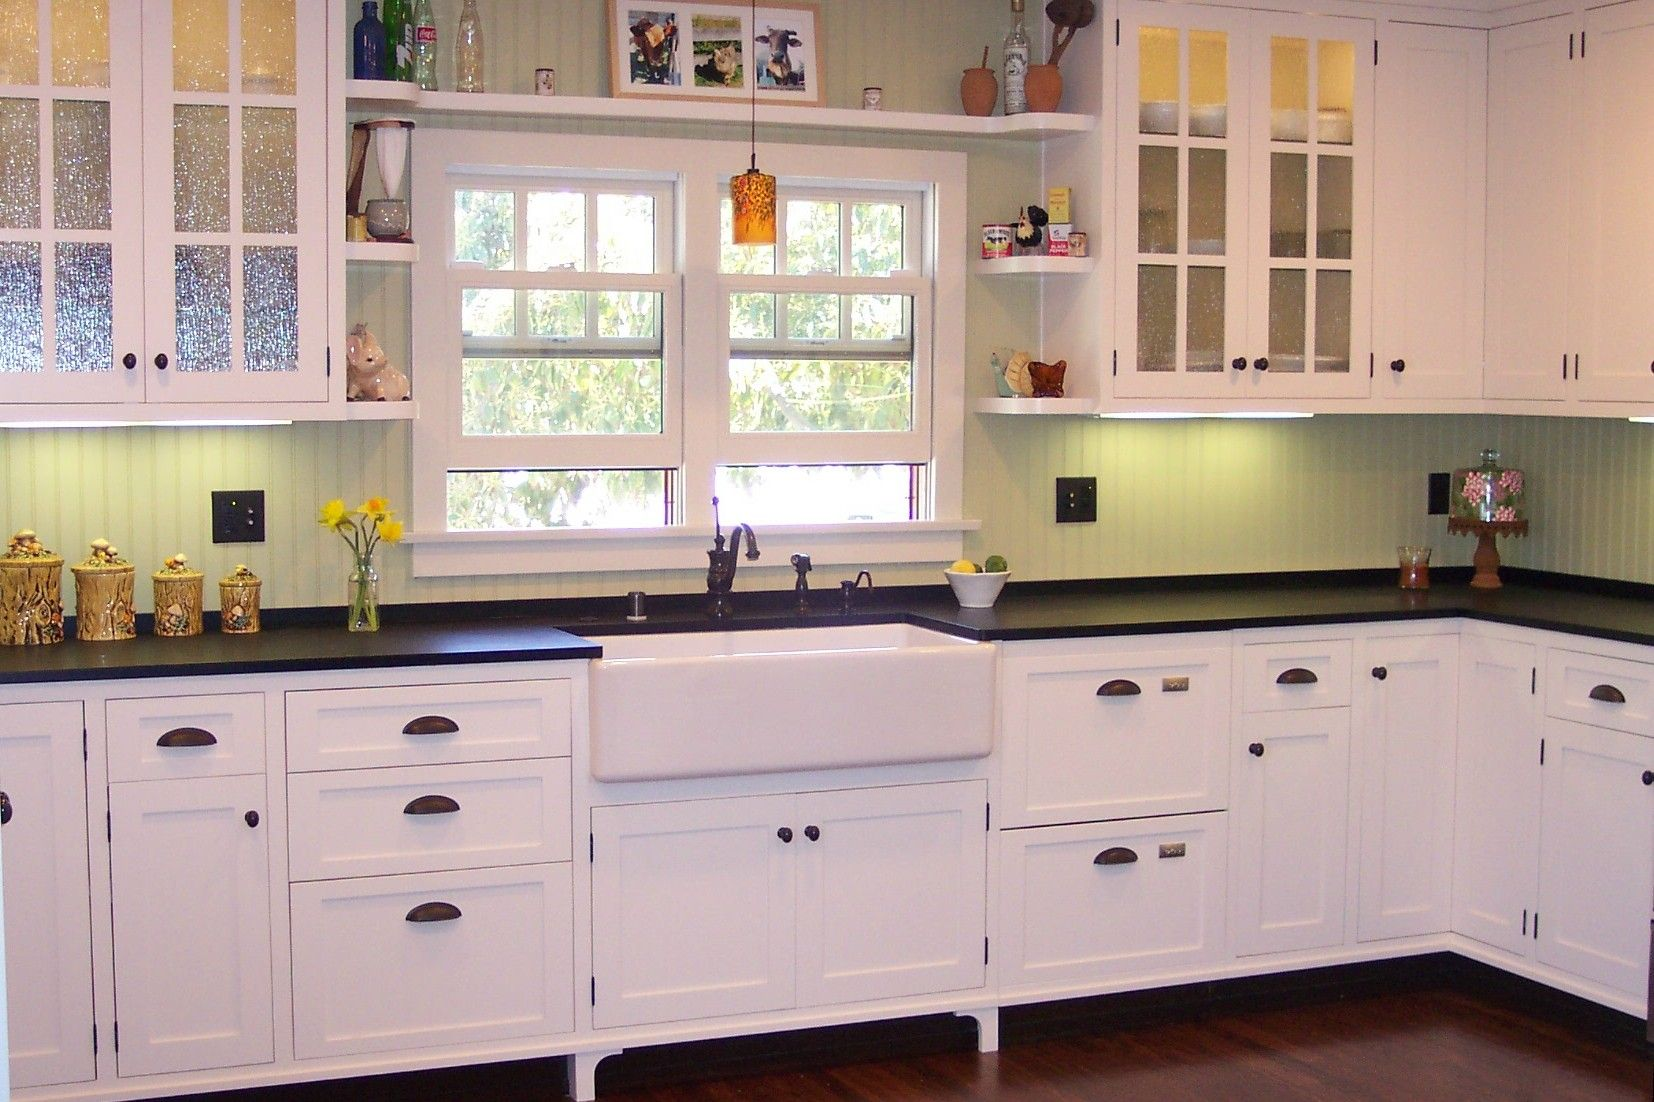 Black And White Cape Cod Kitchen Design And Build By Space Case Design Apron Sink Paperstone Obscured Glass Kitchen Design Interior Design Firms Design